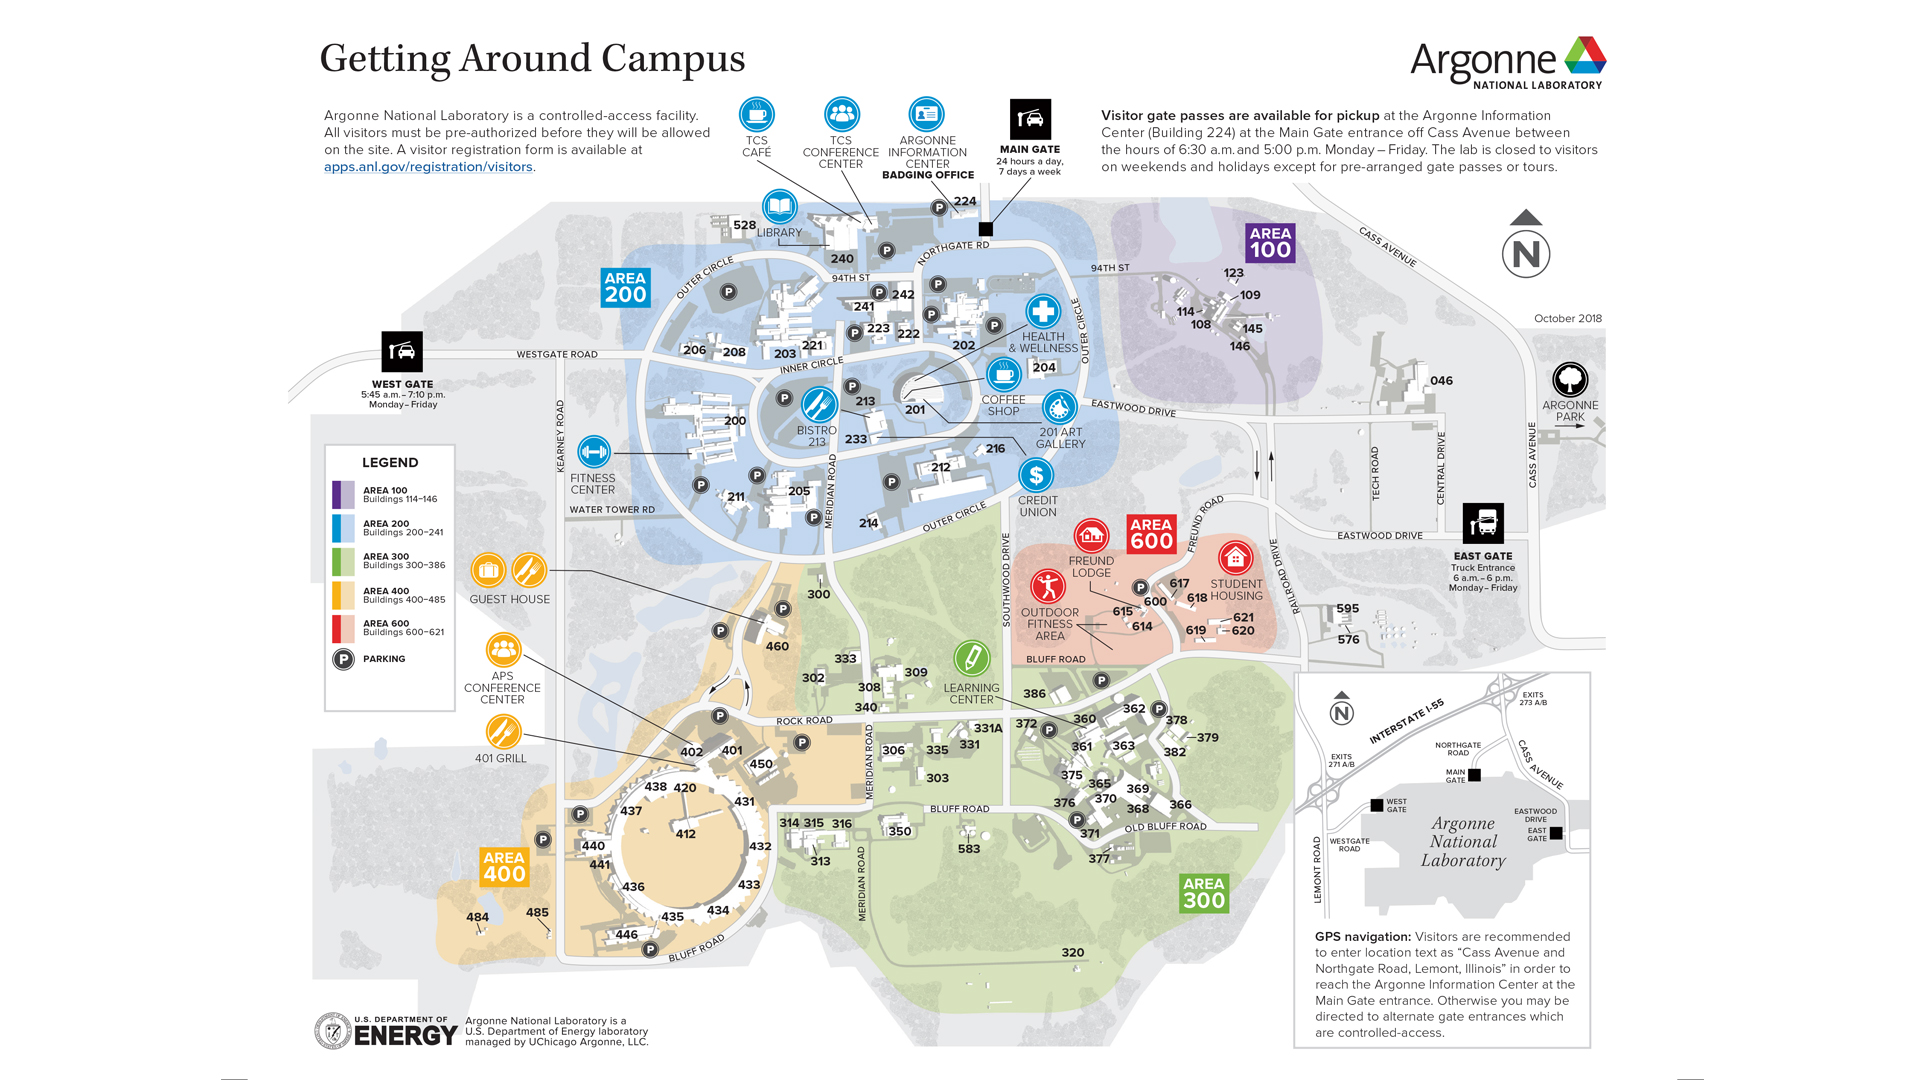 Map of Argonne National Laboratory campus